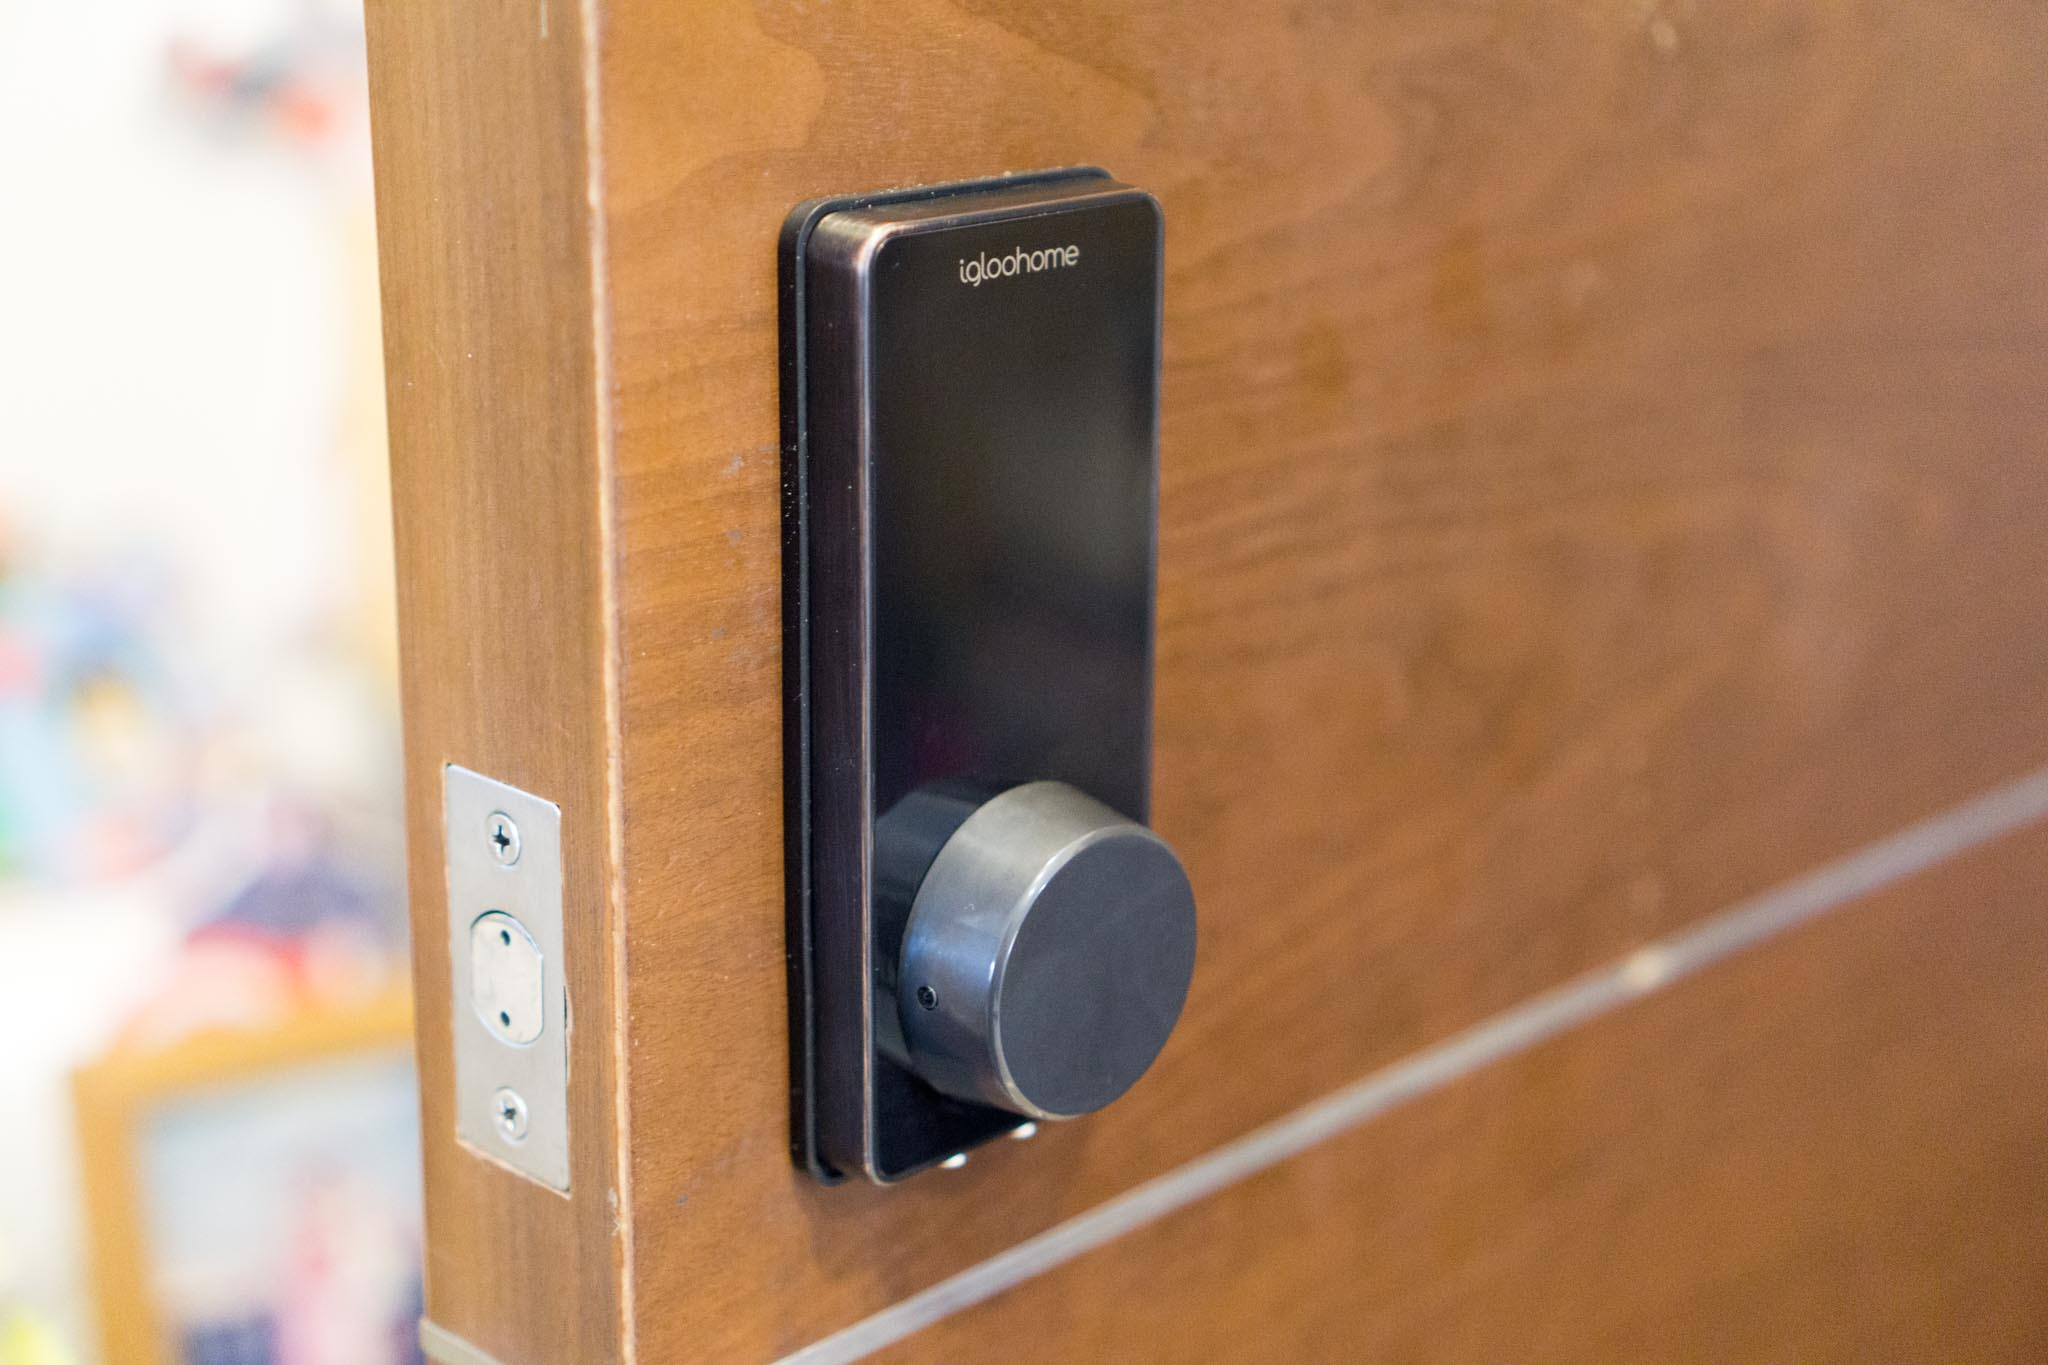 igloohome has an updated smart lock the new model igloohome smart deadbolt lock 02 launched earlier this year with a couple of important